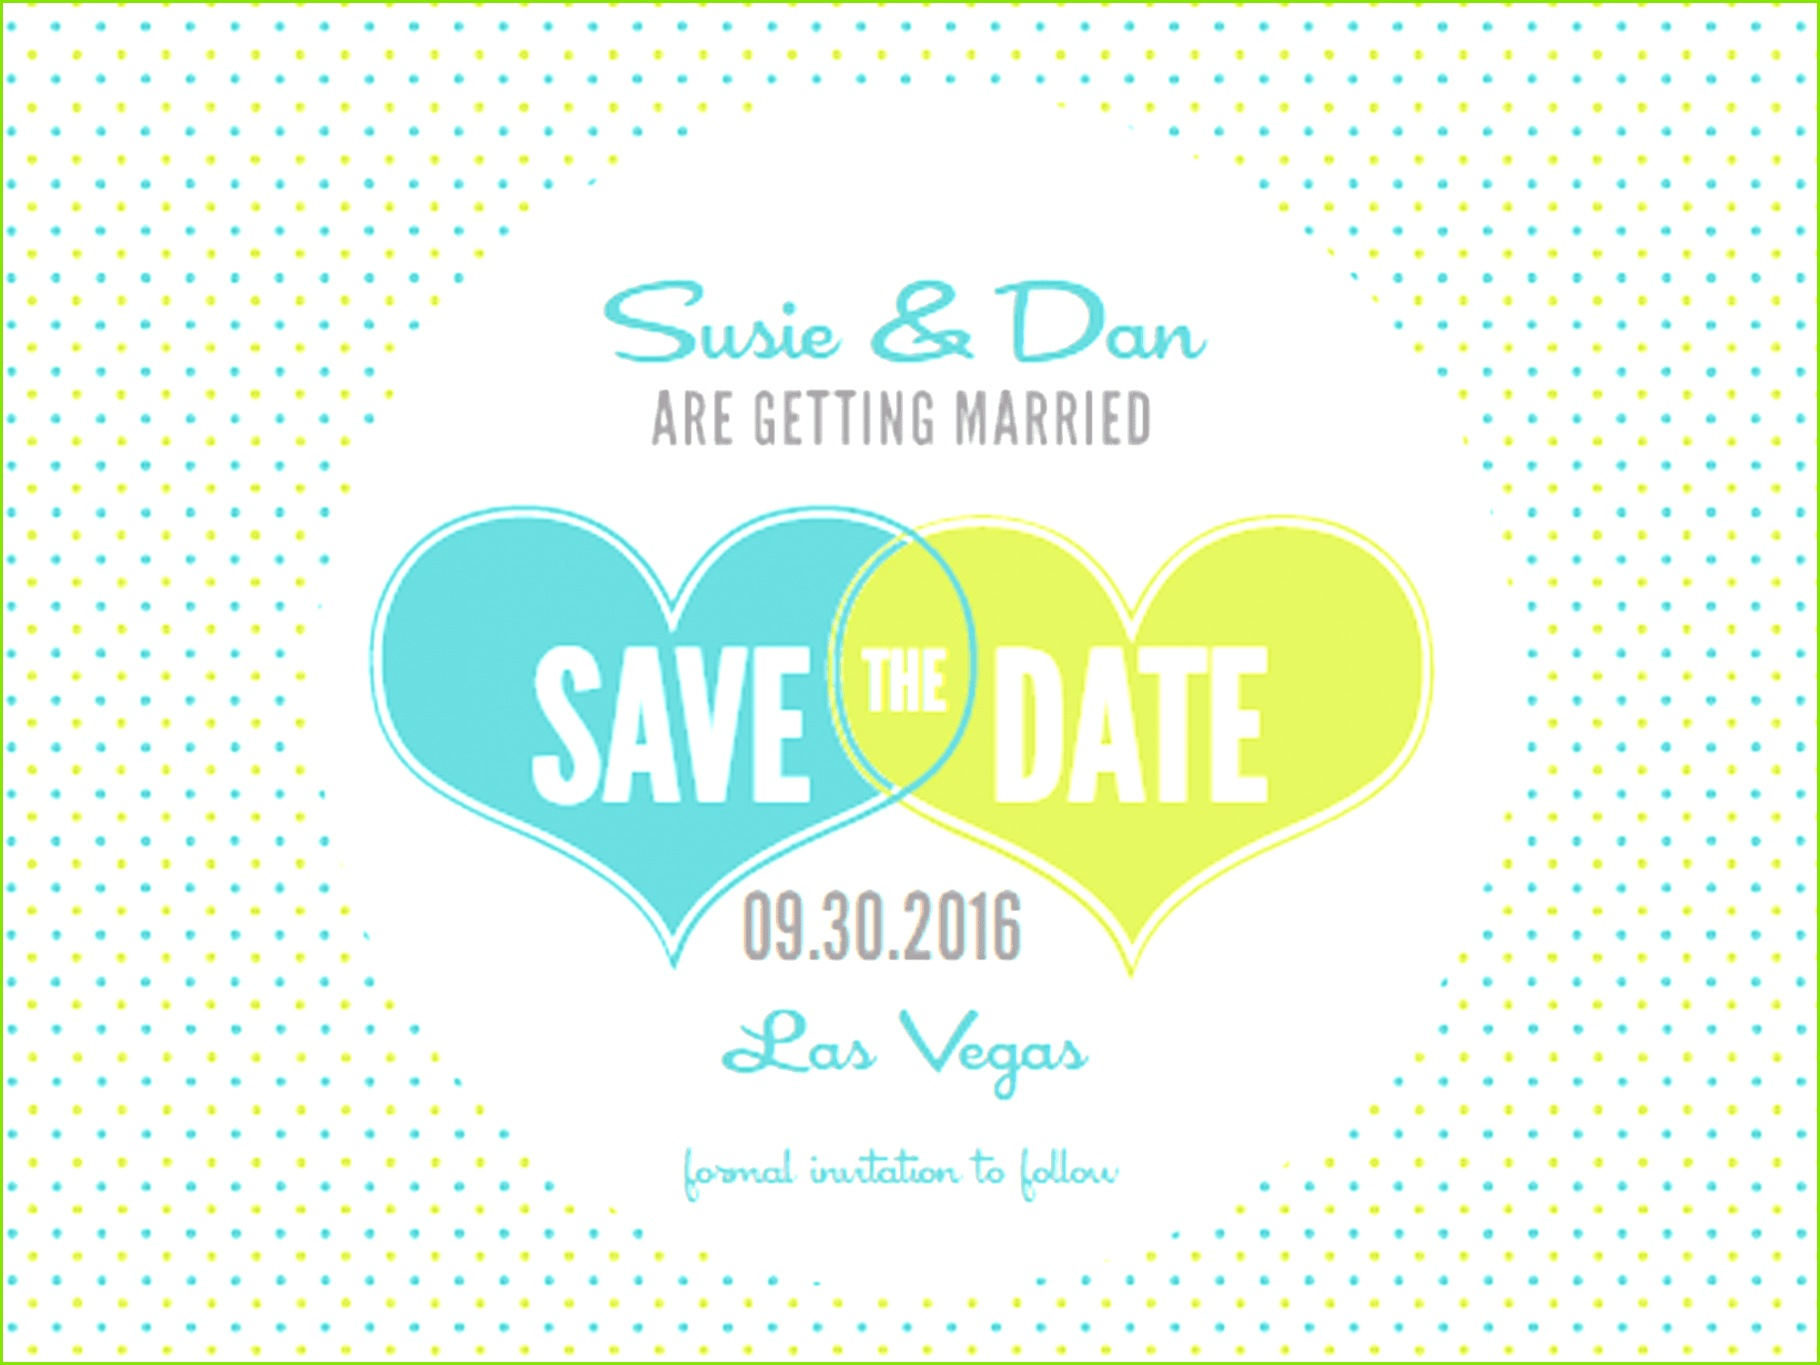 Hearts and Polka Dots Free Printable Save the Date Template from Wedding Chicks